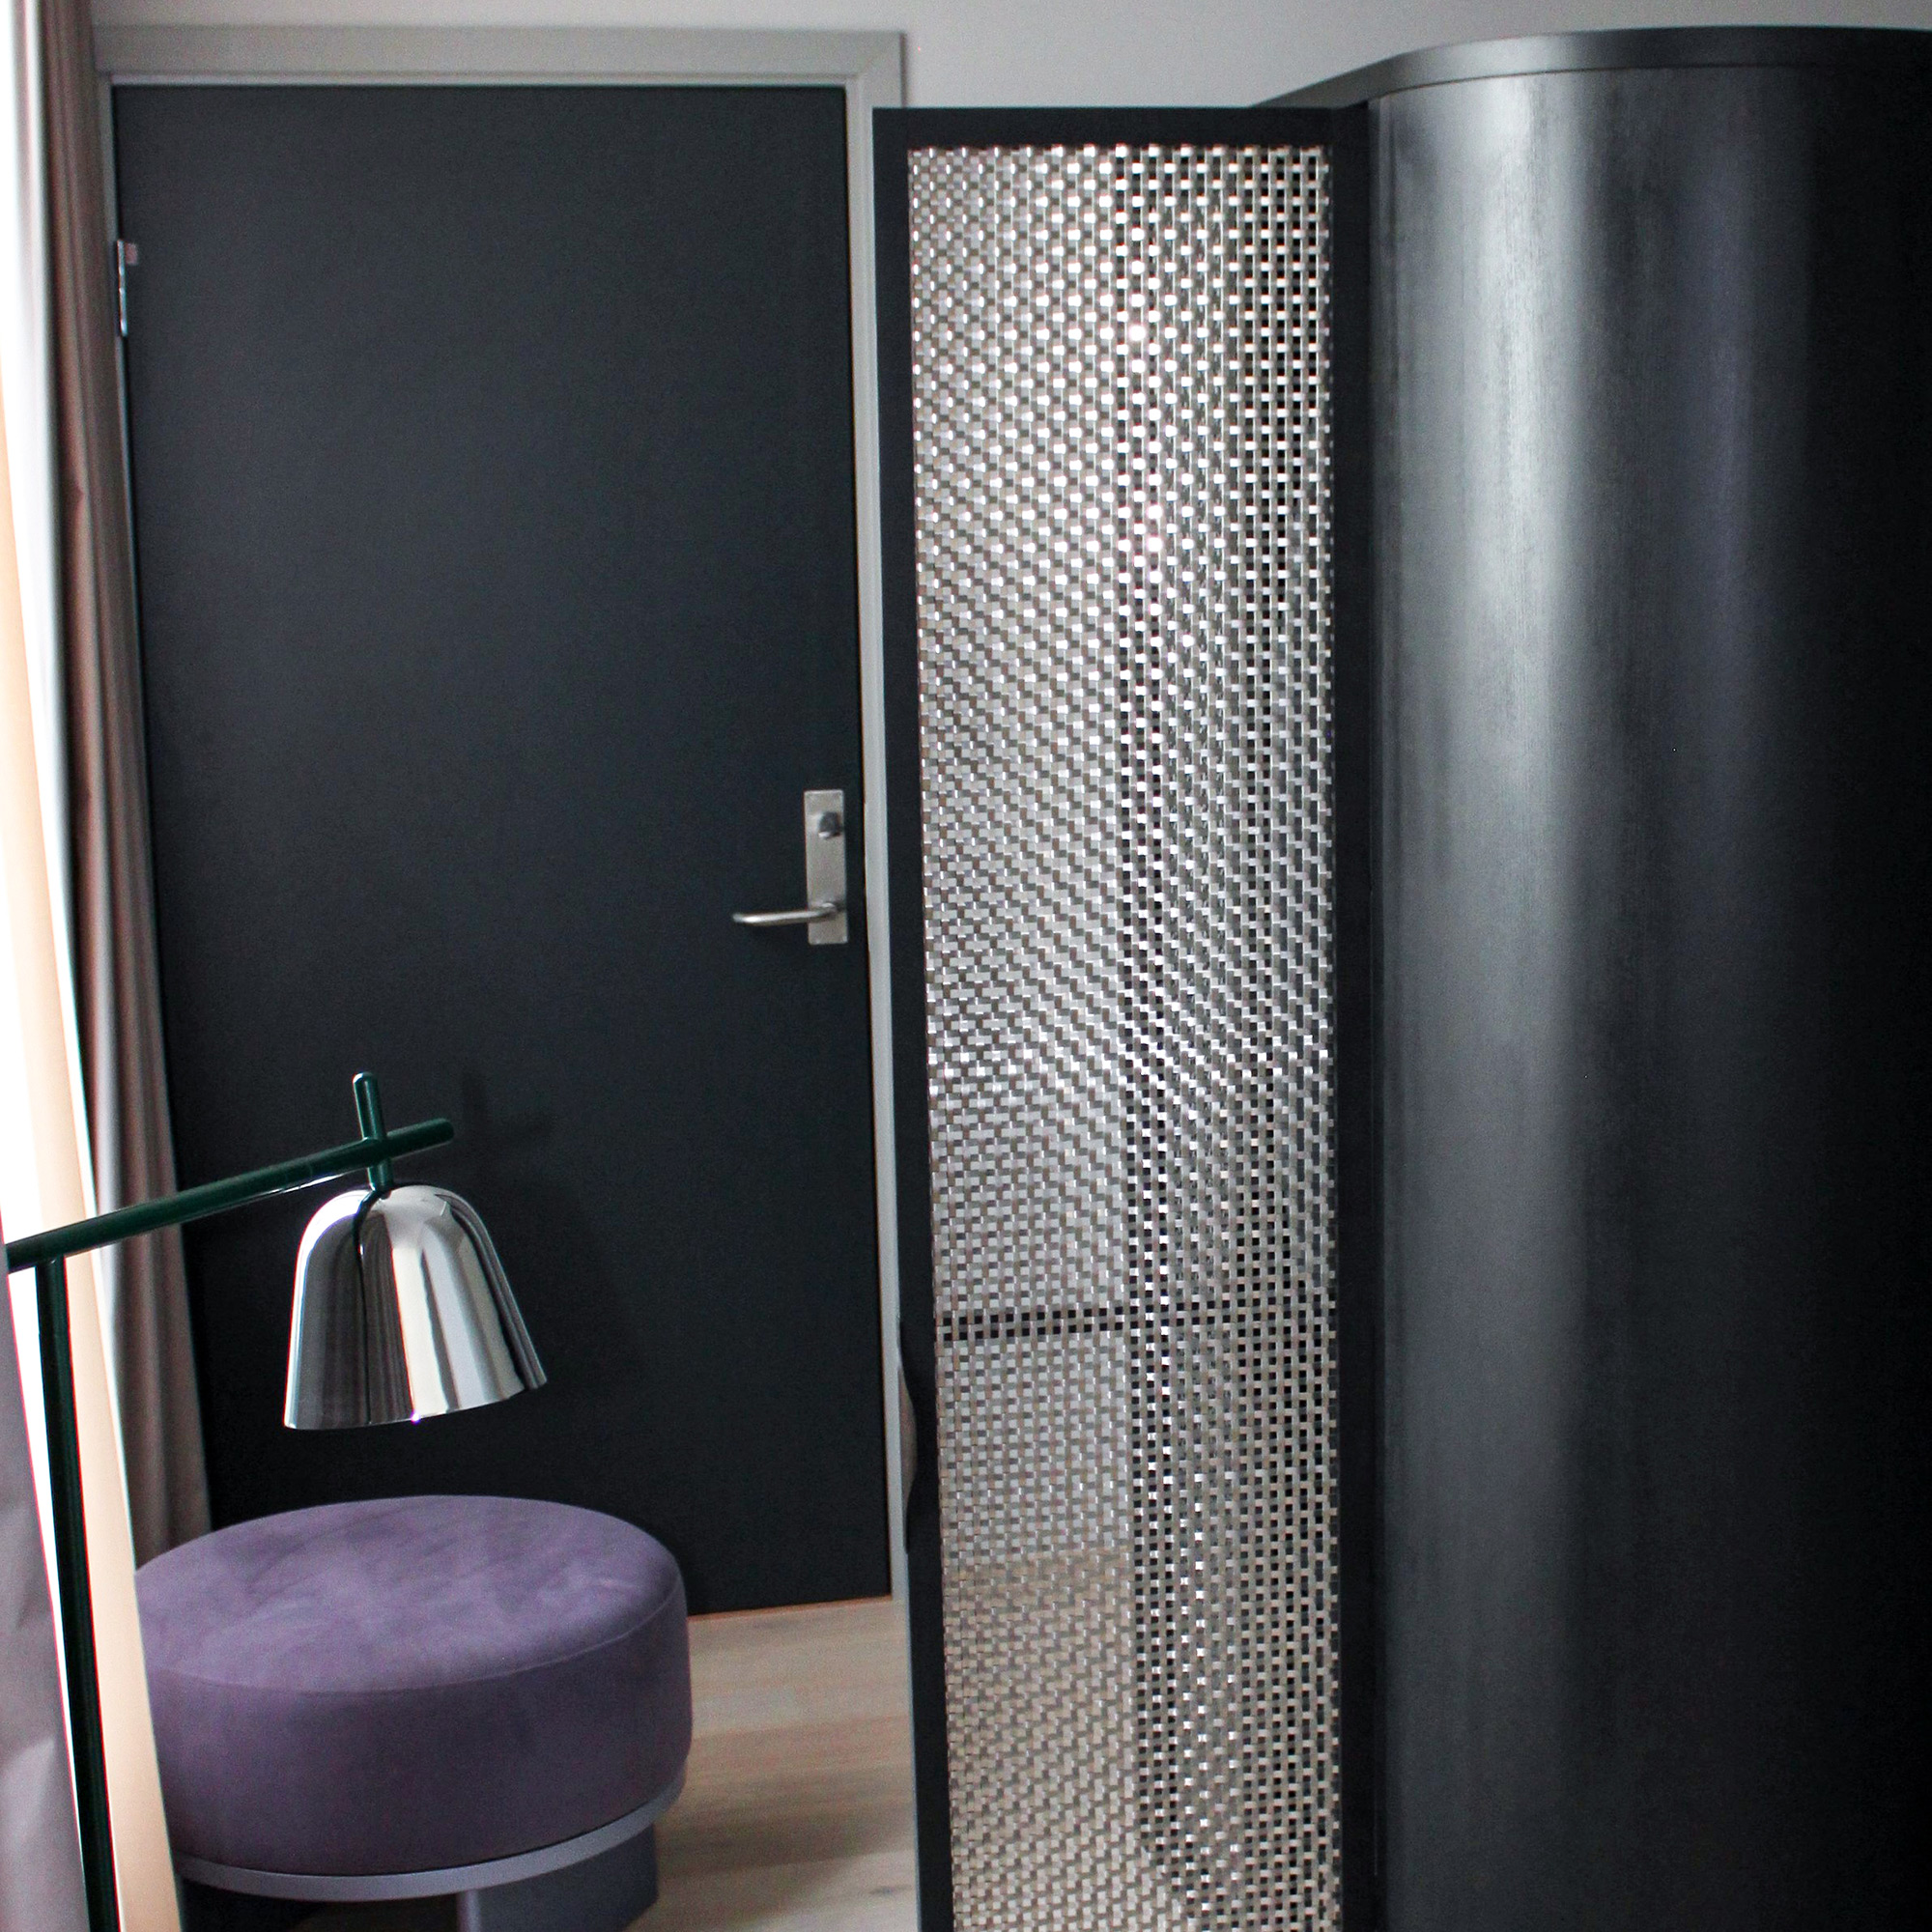 Banker Wire's S-30 woven wire mesh used as part of the cabinetry doors in the Clarion Hotel Oslo rooms.